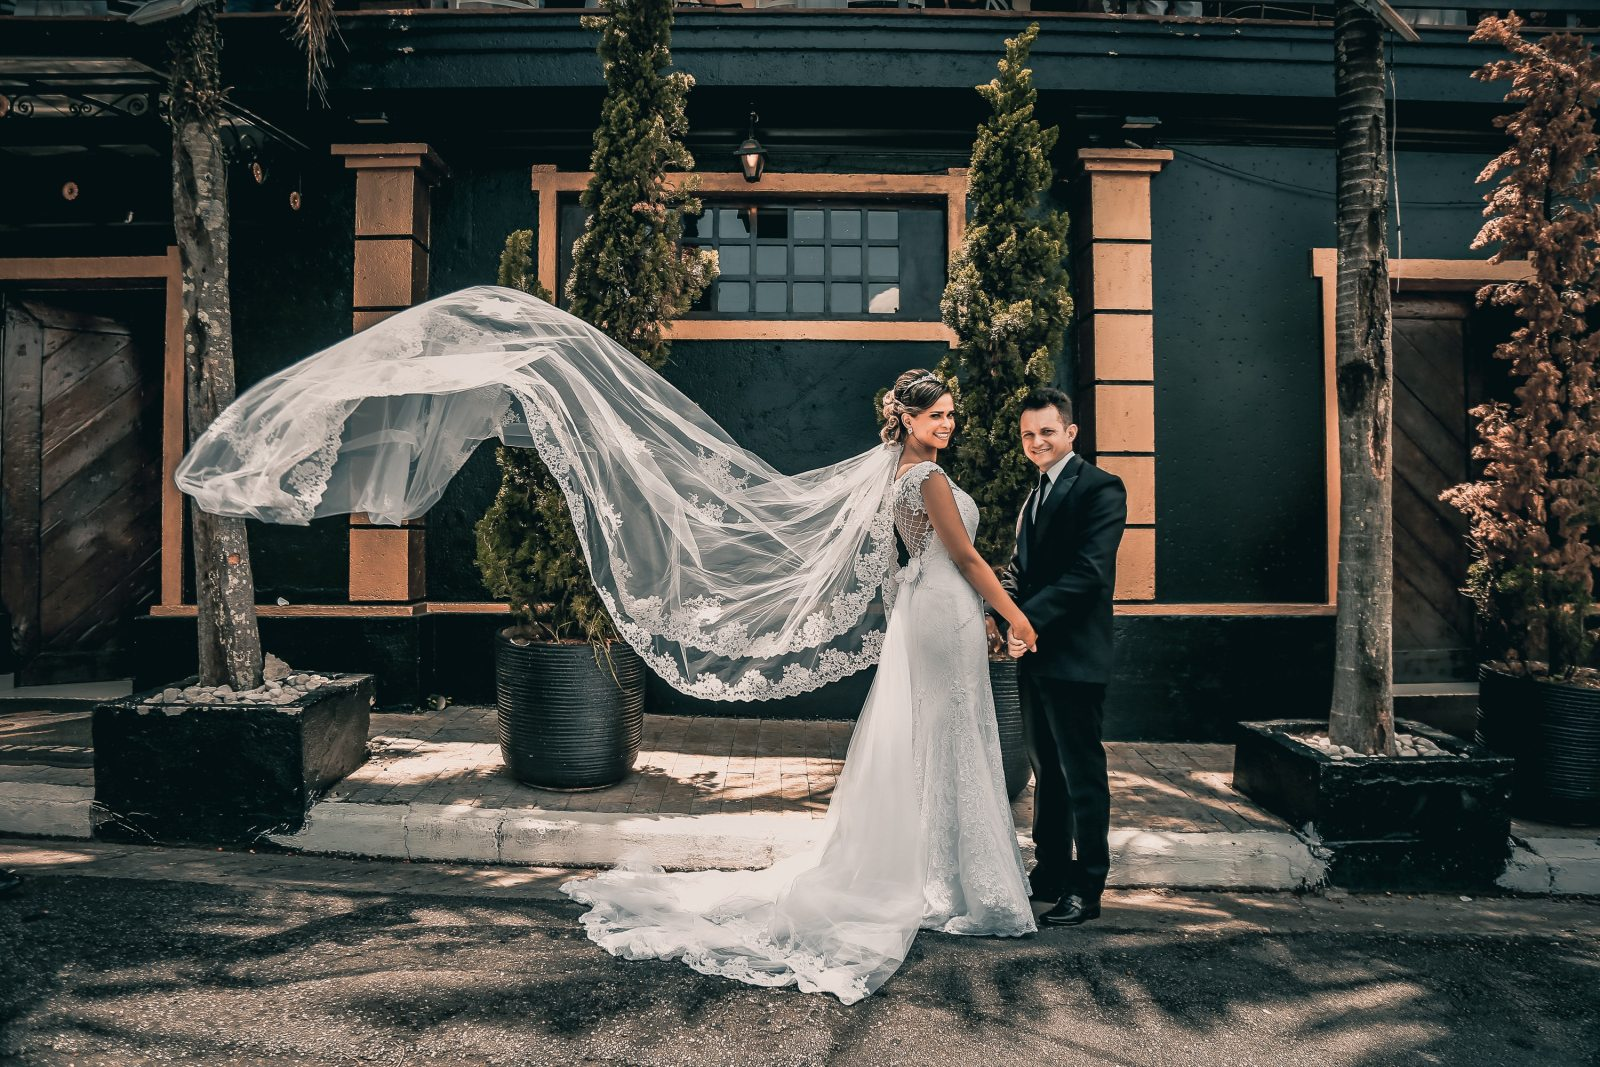 The big day is approaching and you want the ideal veil. To help you out, here are 10 wedding veils so pretty that they will bring tears to your eyes.